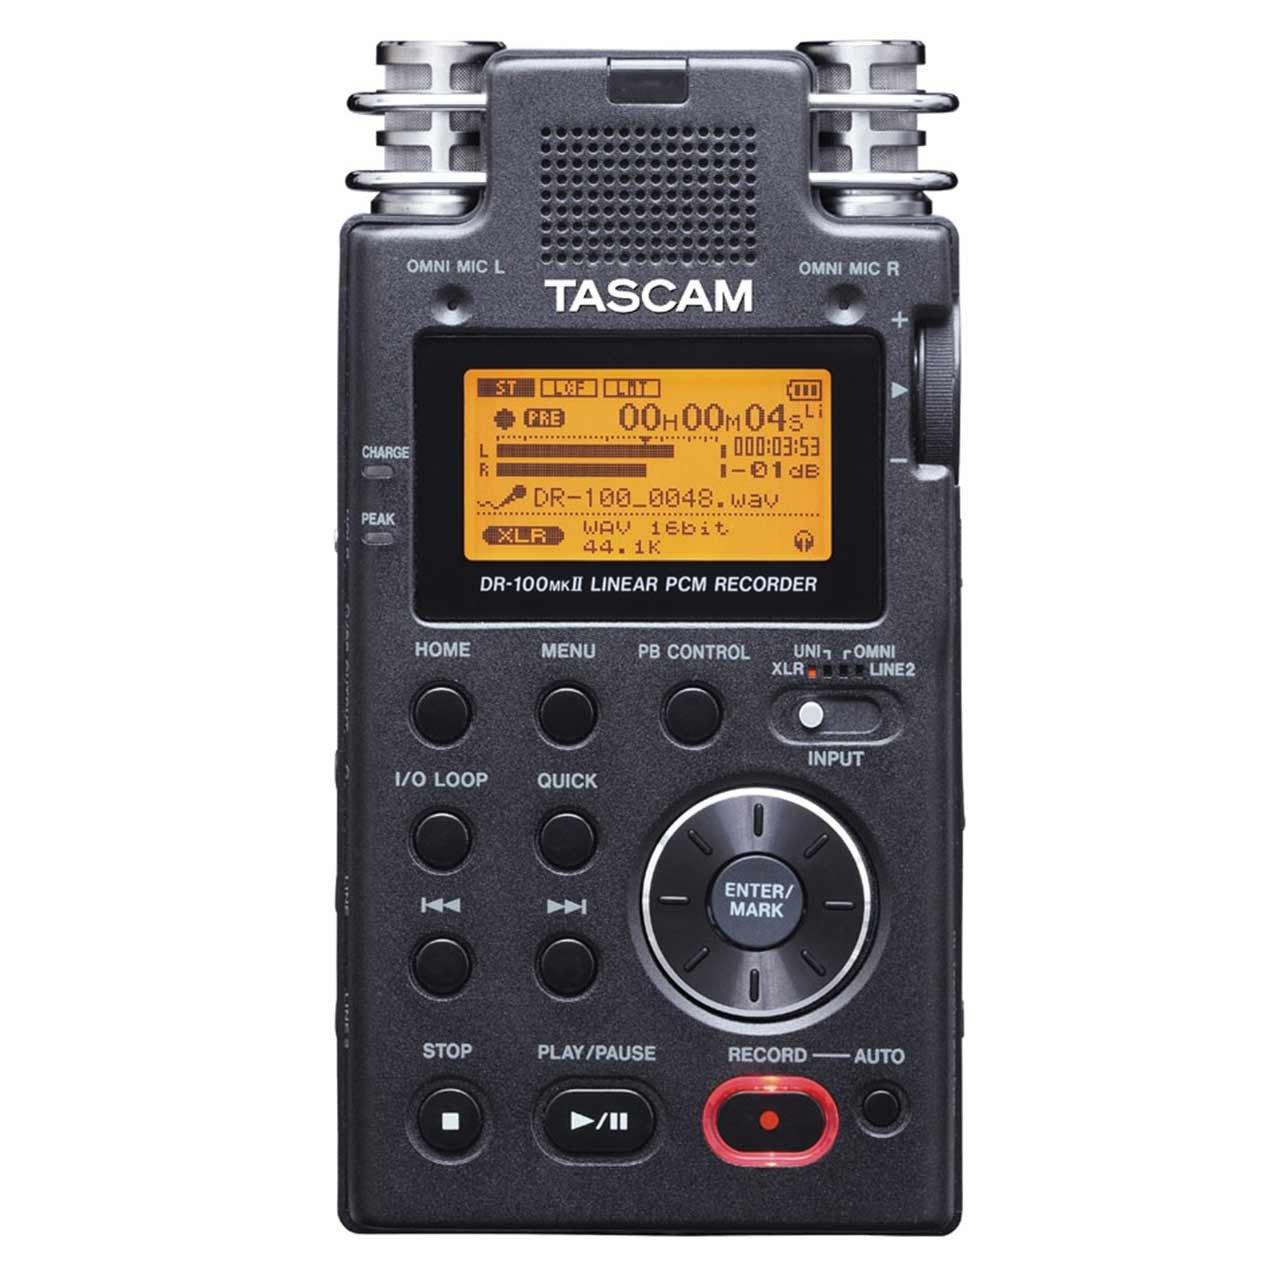 Portable Recorder - Tascam DR-100MKII High End Stereo Portable Digital Recorder